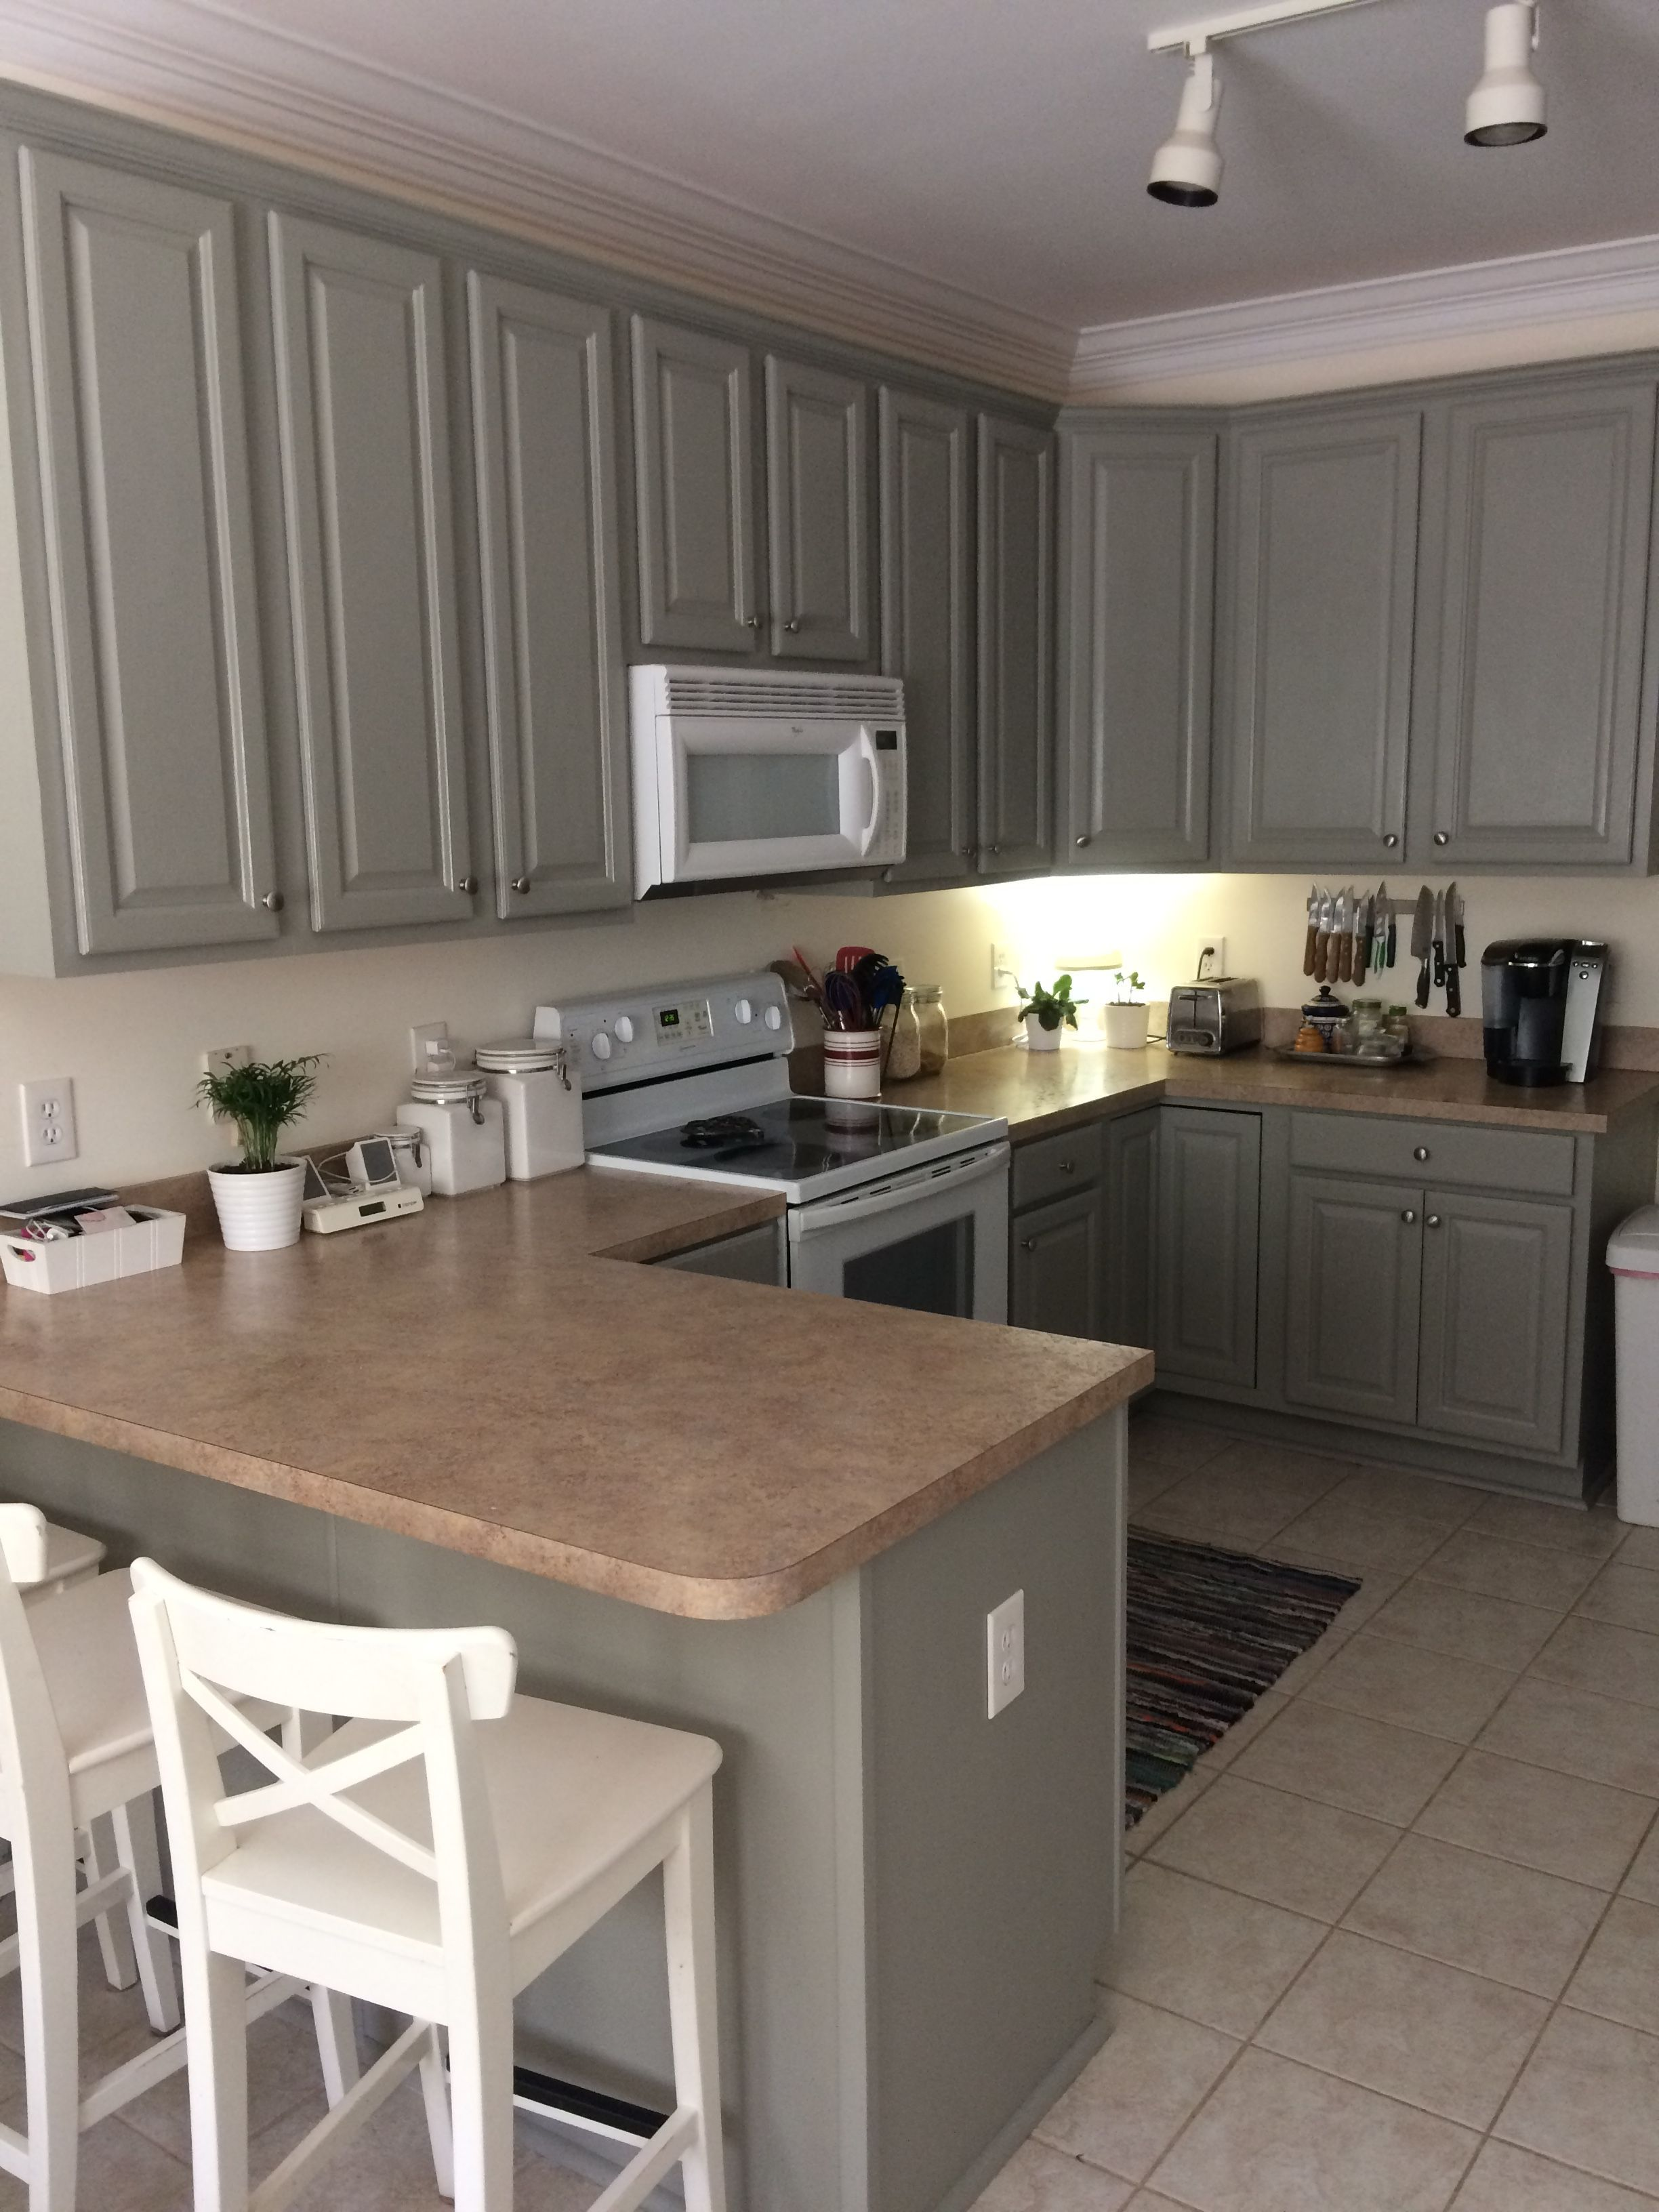 Kitchen cabinets painted Sherwin Williams Intellectual ...